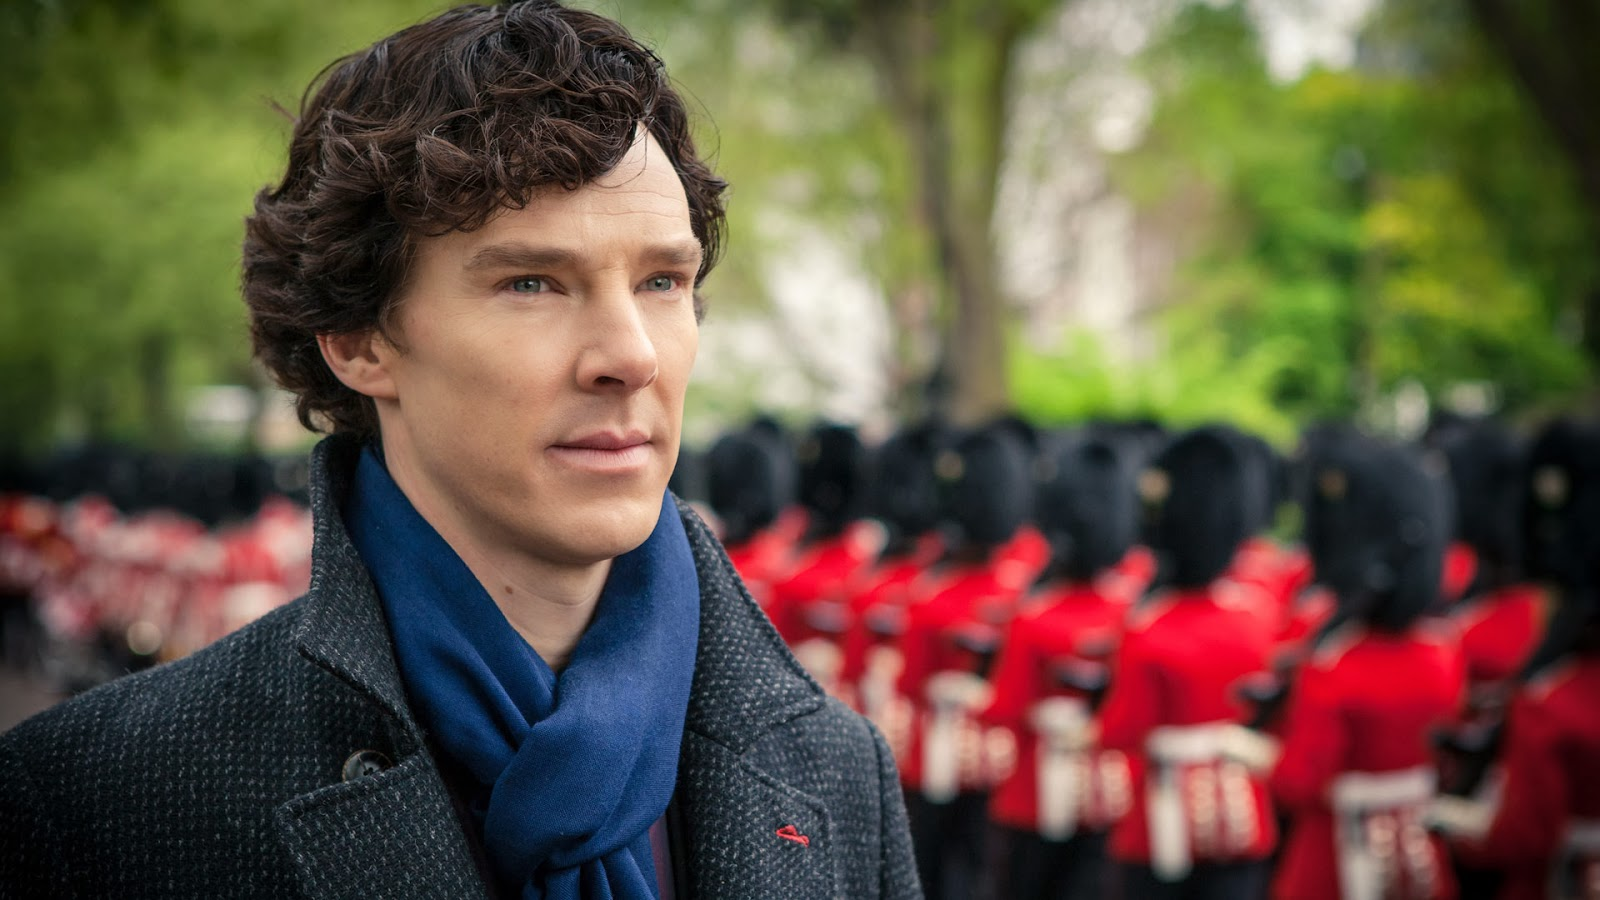 Benedict Cumberbatch as Sherlock Holmes in BBC Sherlock Season 3 Episode 2 The Sign of Three